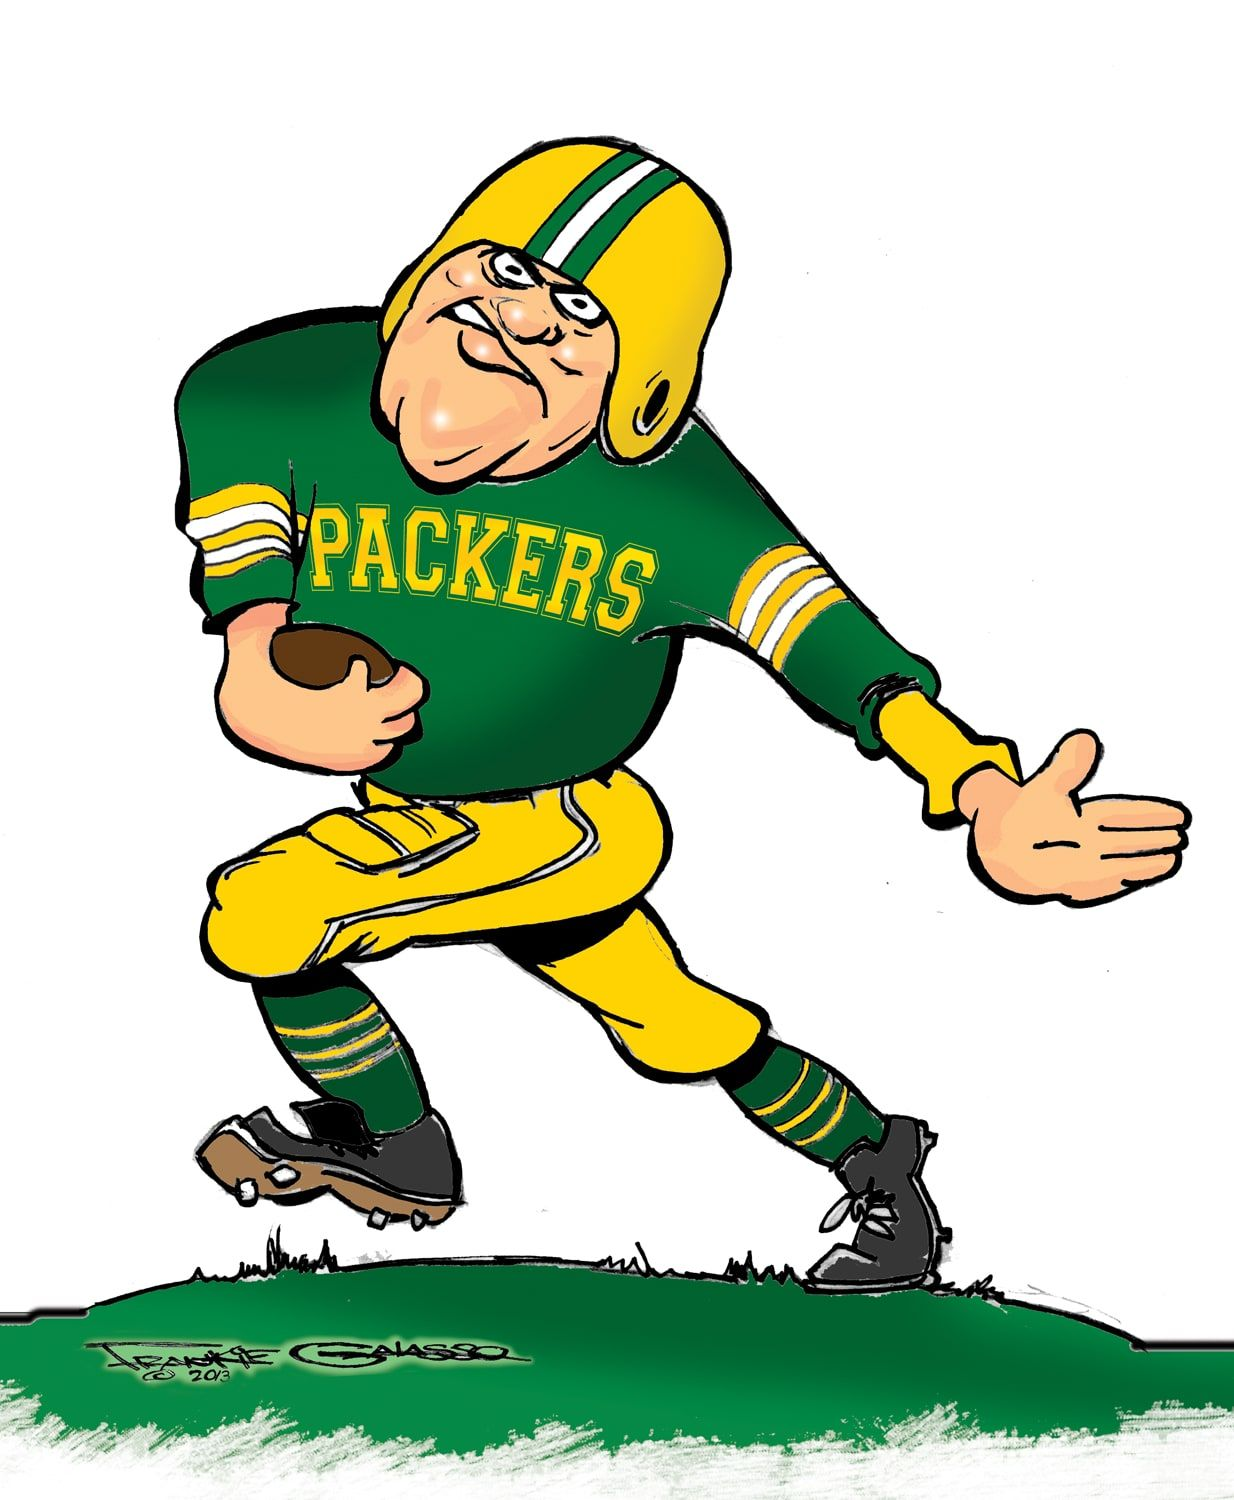 1962 Packers Artist S Version Packers Football Football Logo Nfl Green Bay